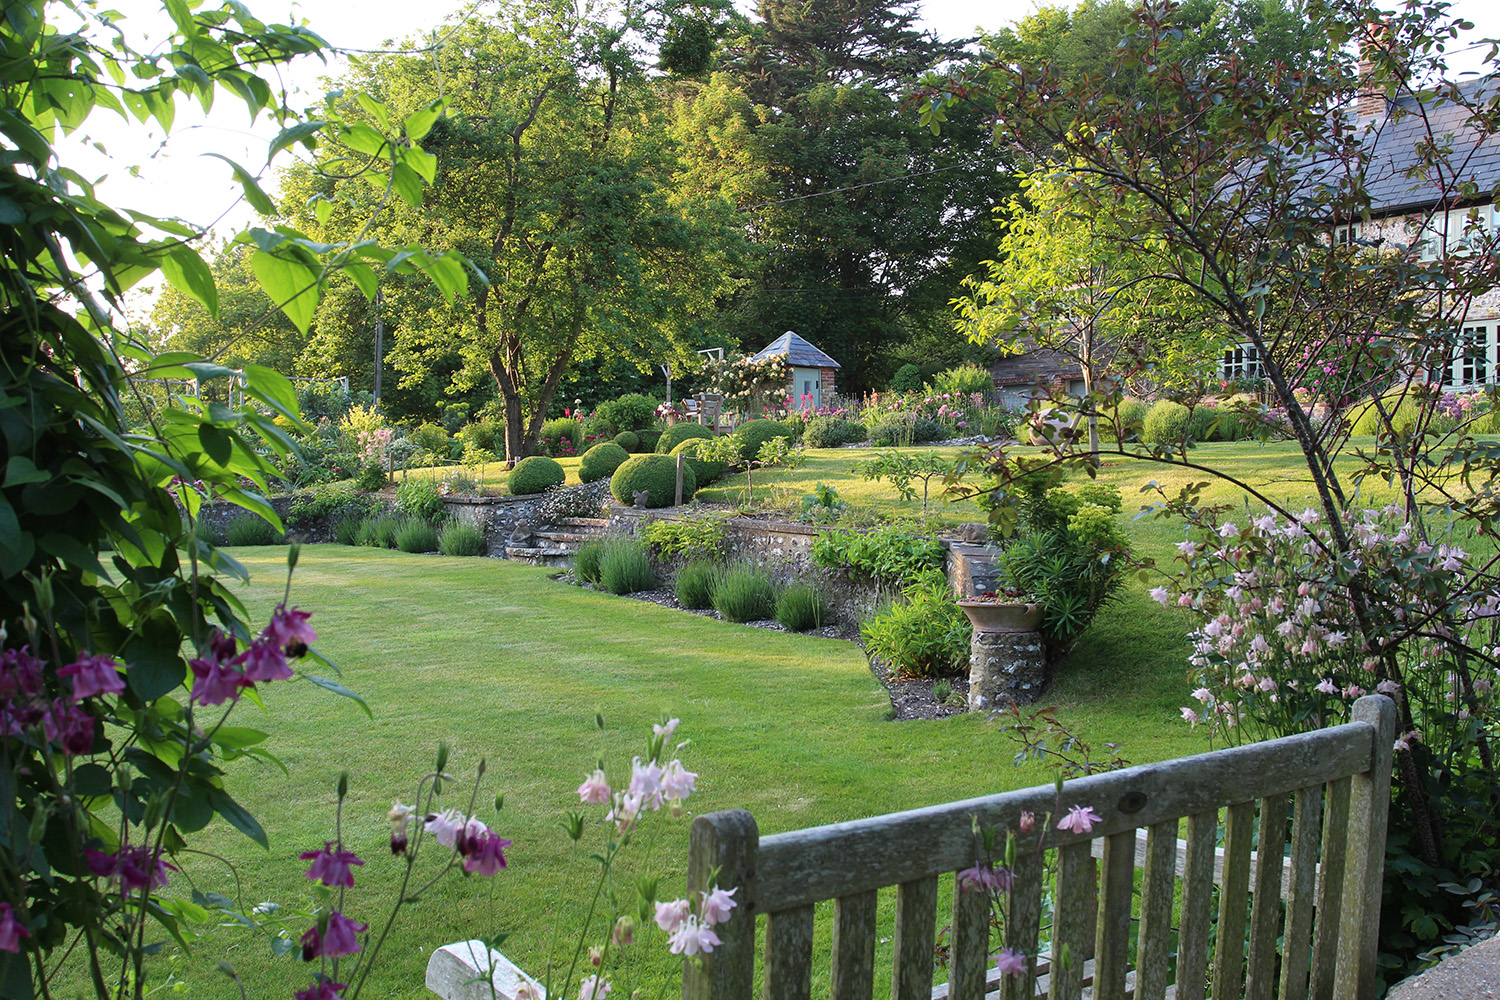 The Long House Garden